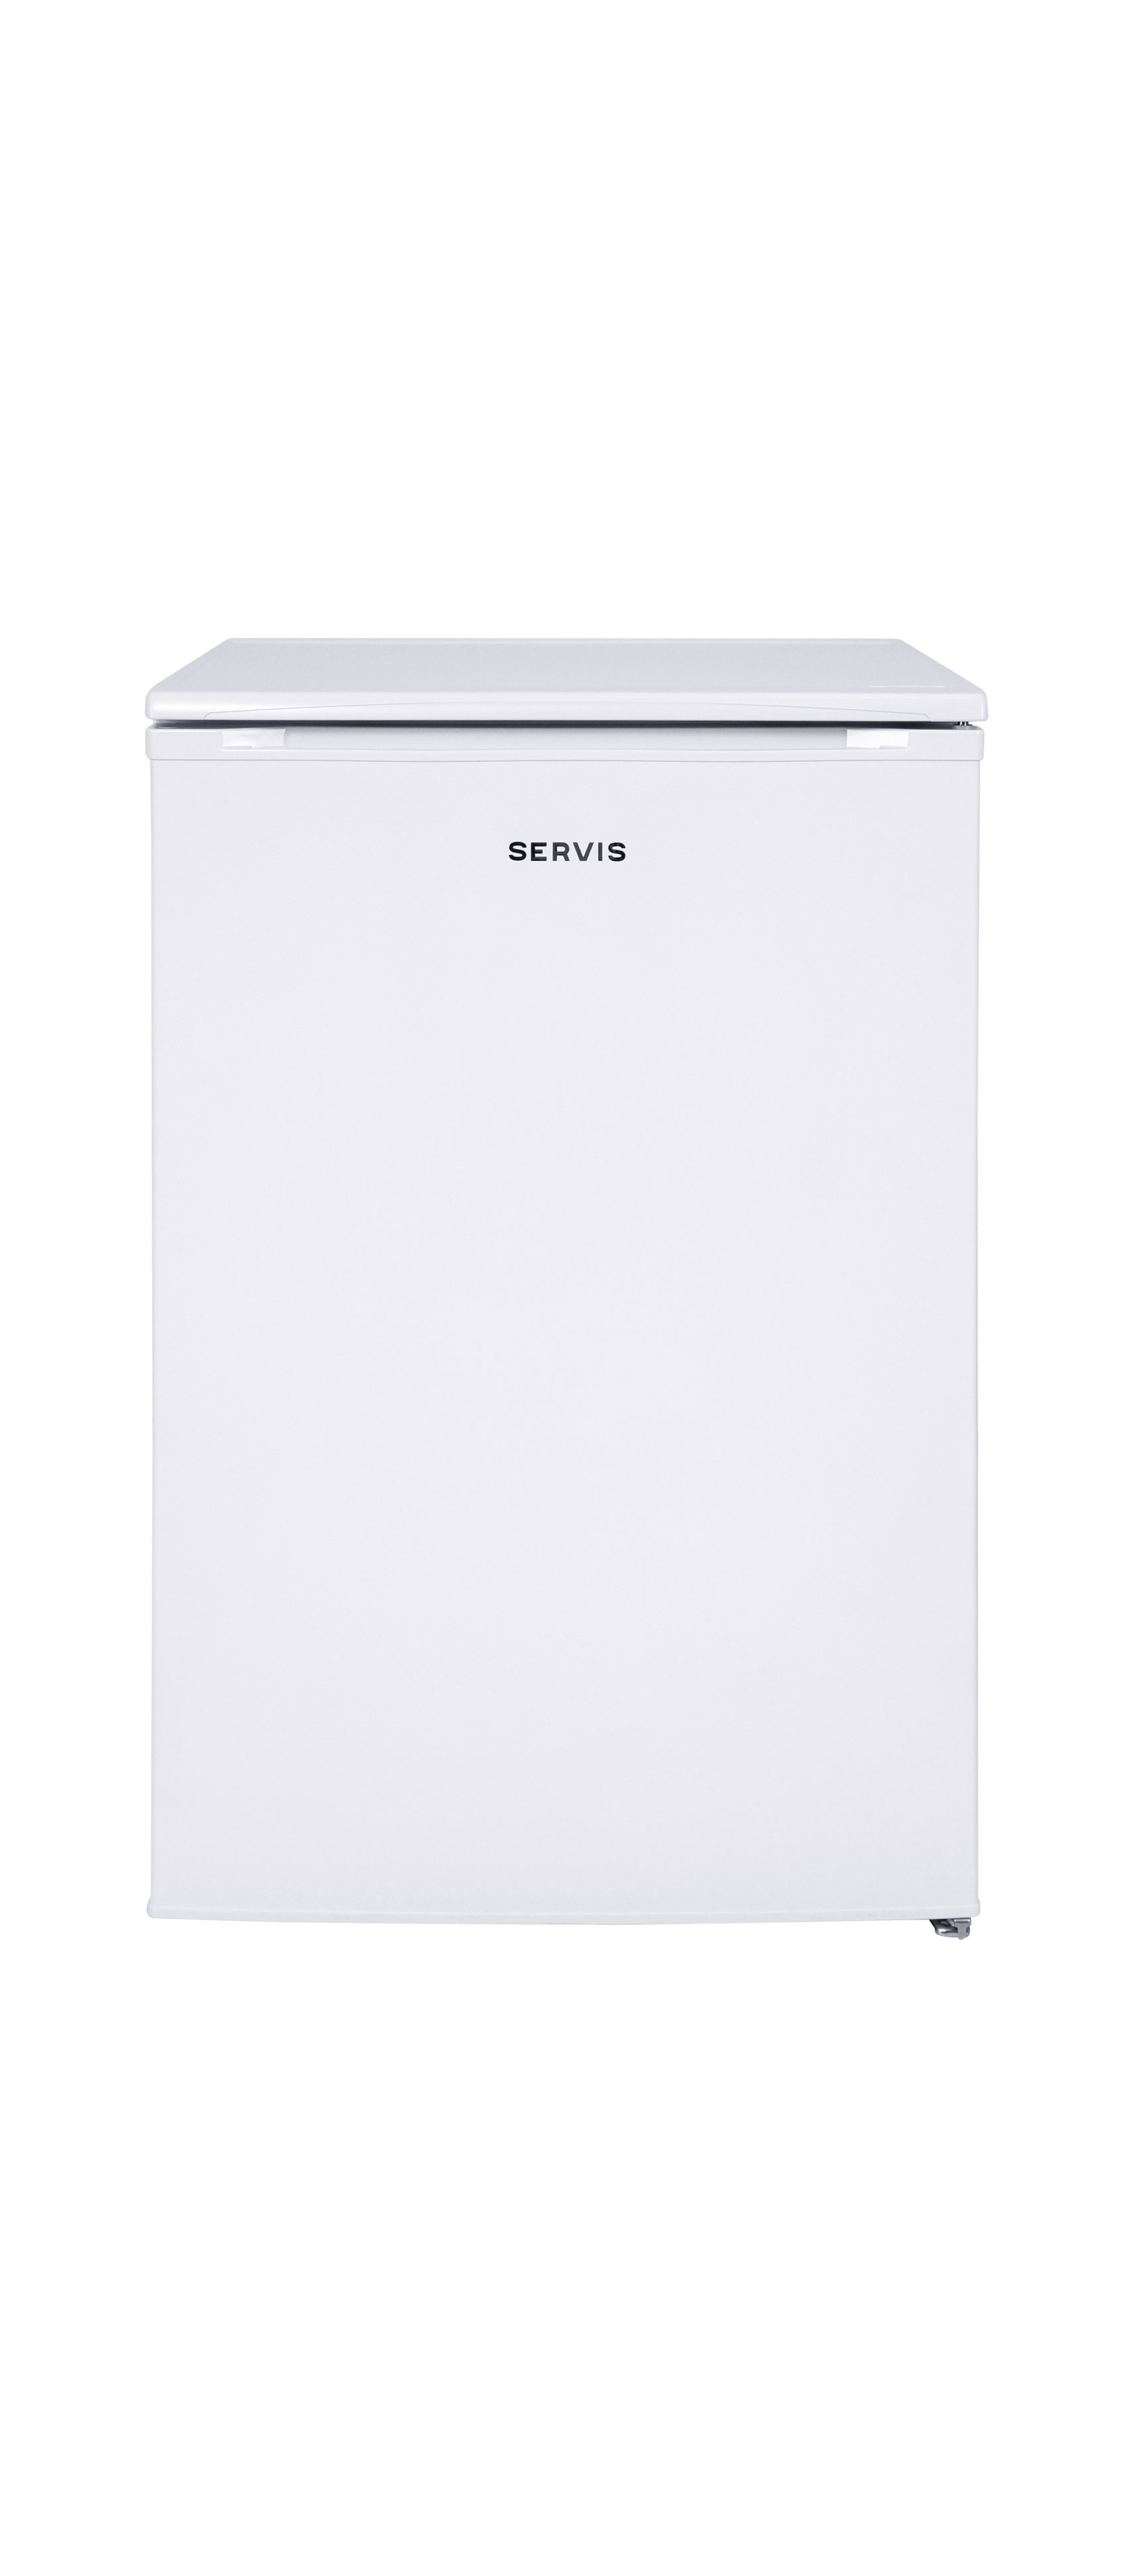 UL55W - Undercounter Fridge